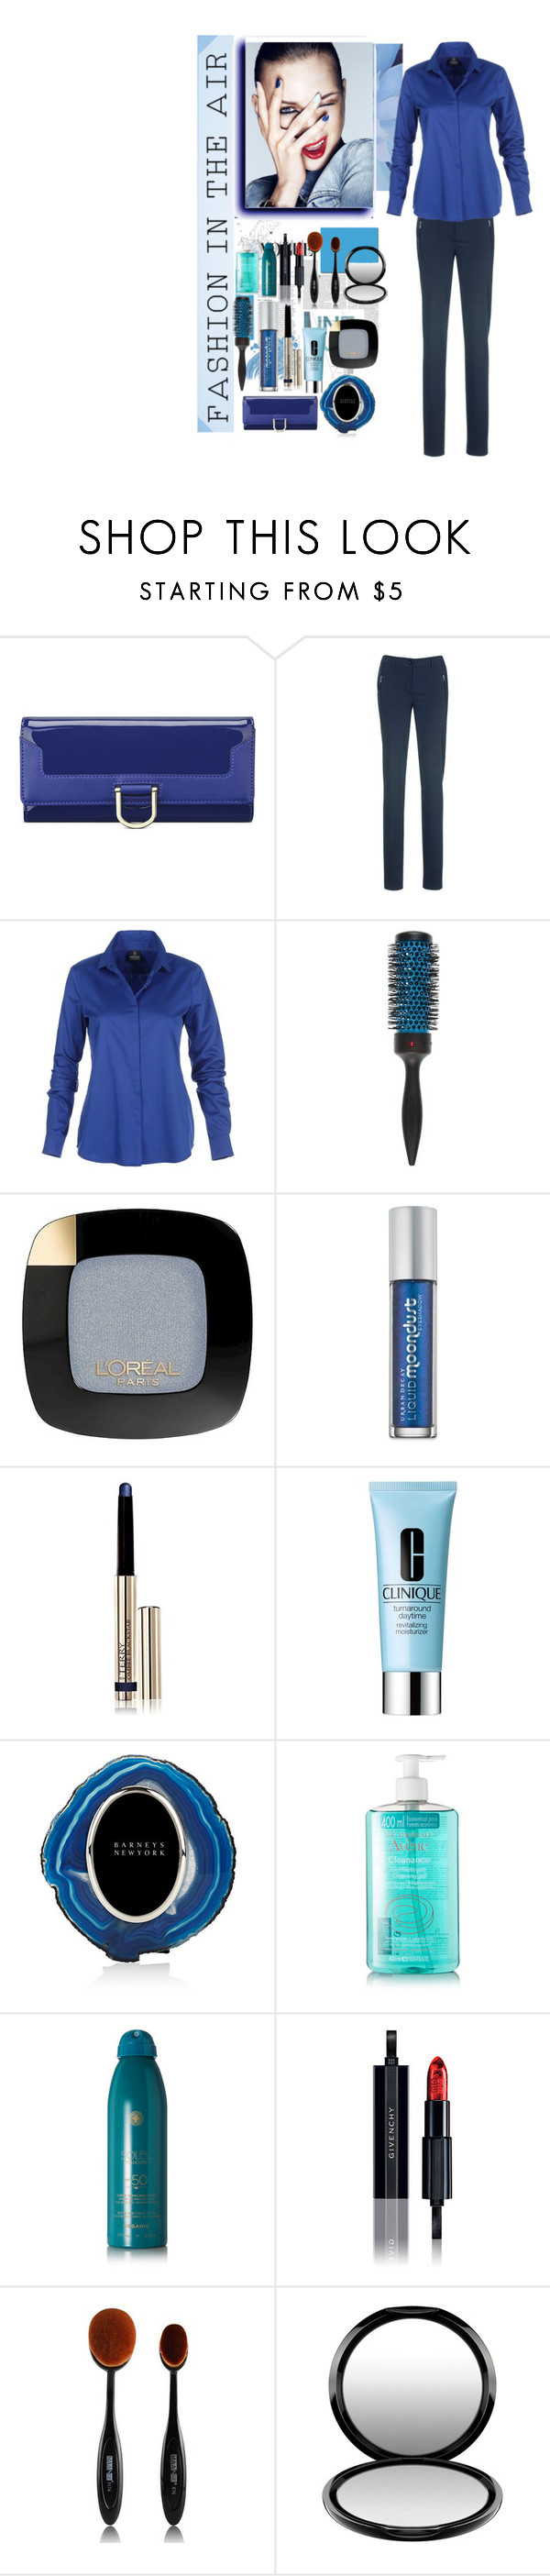 """Blue chic"" by krystalkm-7 ❤ liked on Polyvore featuring Nine West, Denman, L'Oréal Paris, Urban Decay, By Terry, Clinique, Anna New York, Avène, Soleil Toujours and Givenchy"